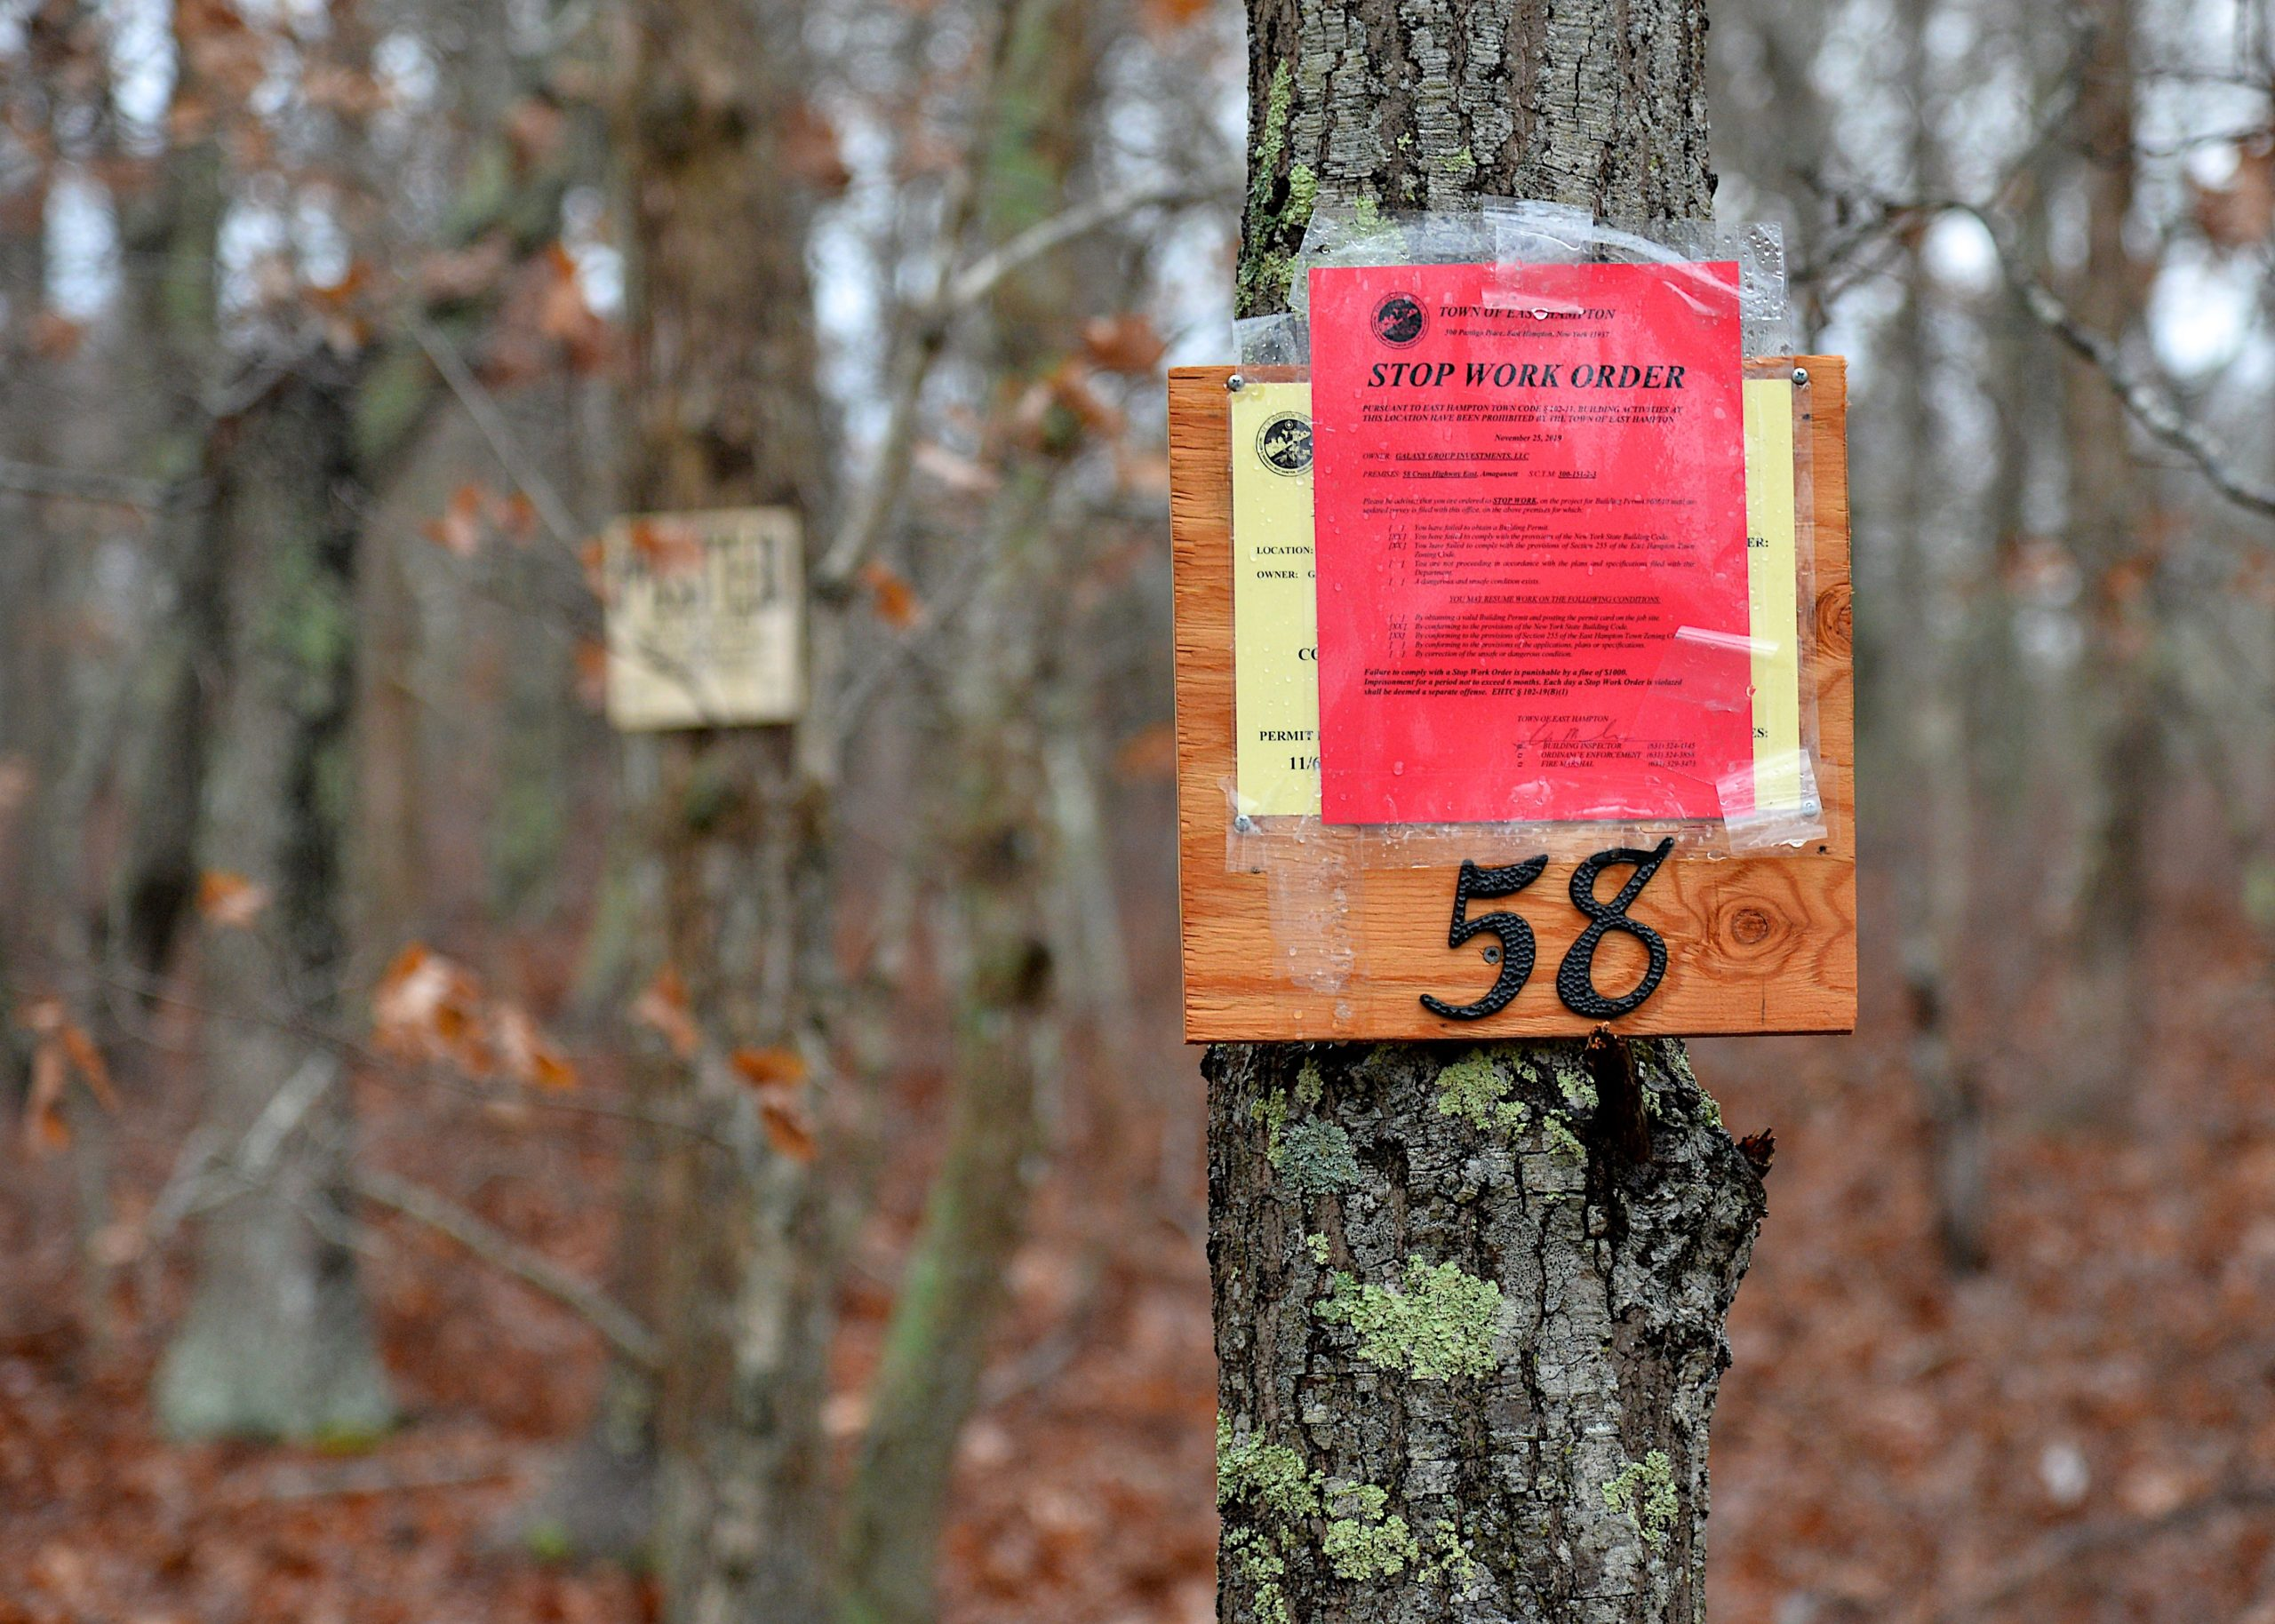 East Hampton has imposed a stop-work order on a the clearing of an Amagansett property that has been the subject of a legal and historical dispute over an unimproved roadway that appears to cut across the land.